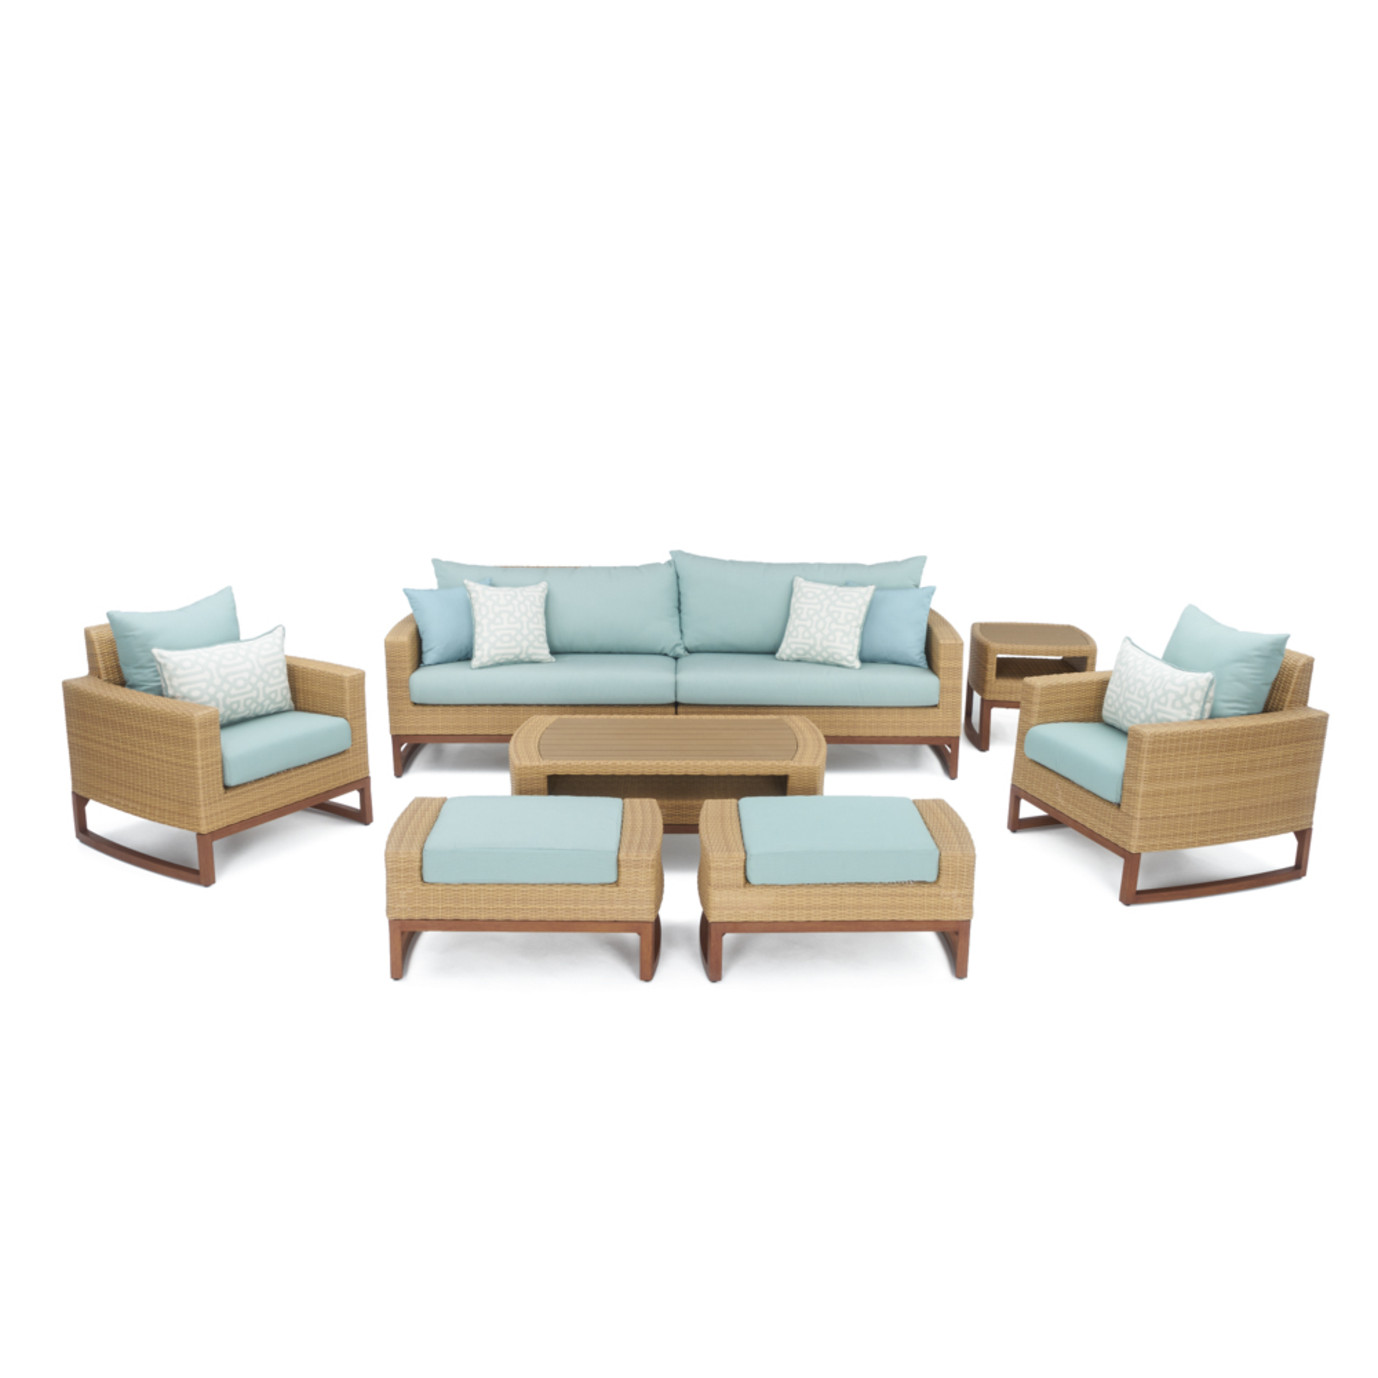 Milea™ 8pc Deep Seating Set - Spa Blue